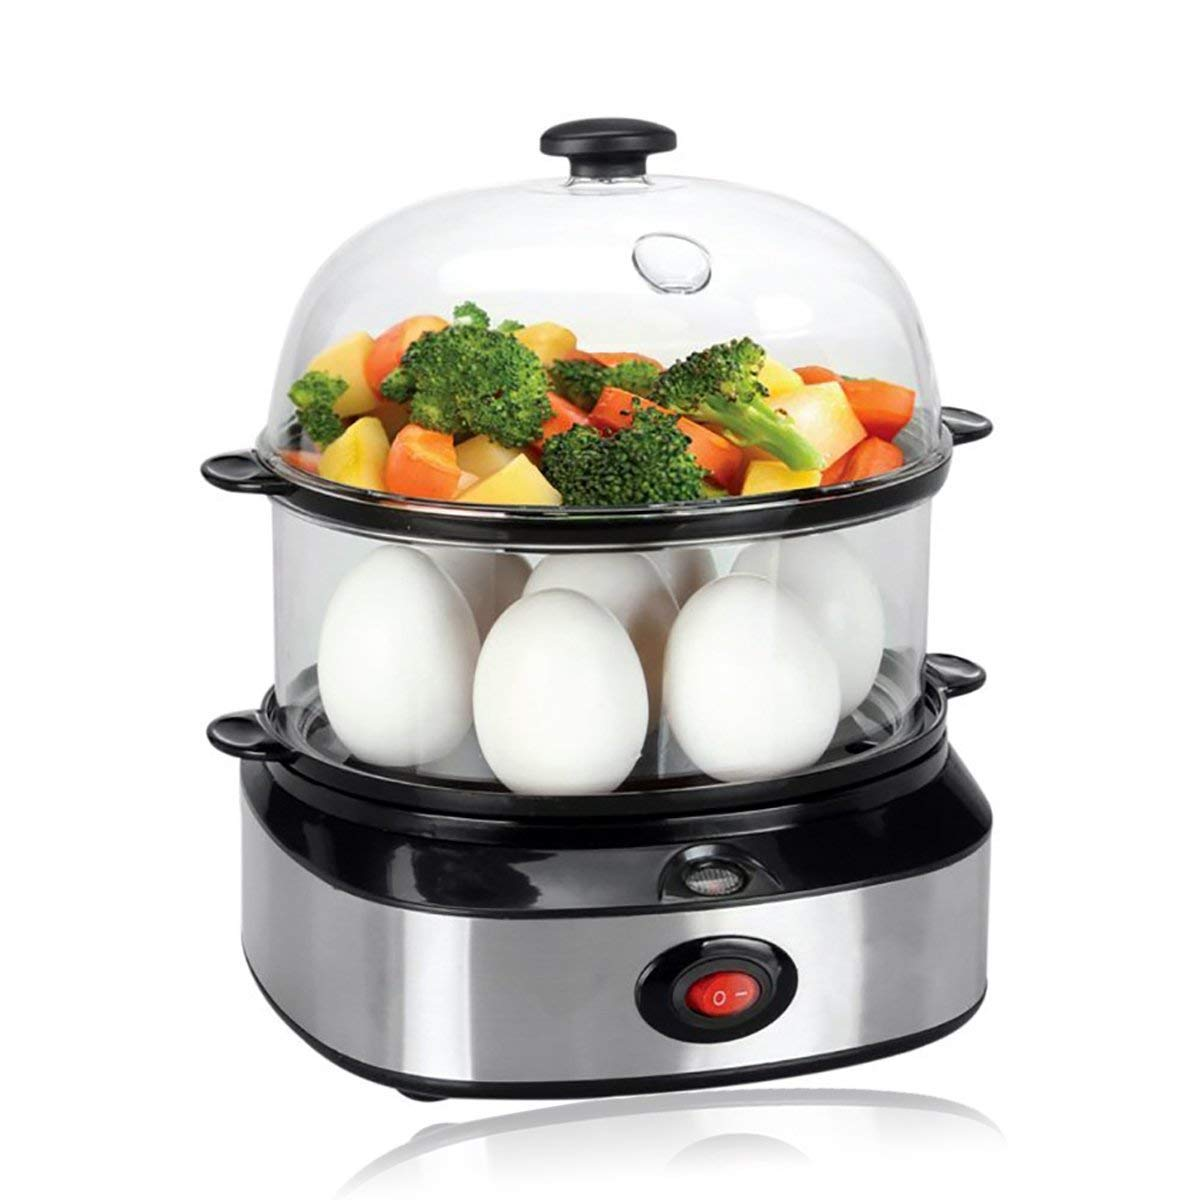 PowerDoF Double Tier ZDQ-702A Electric Multi Function Egg Cooker with Food Steamer, 1